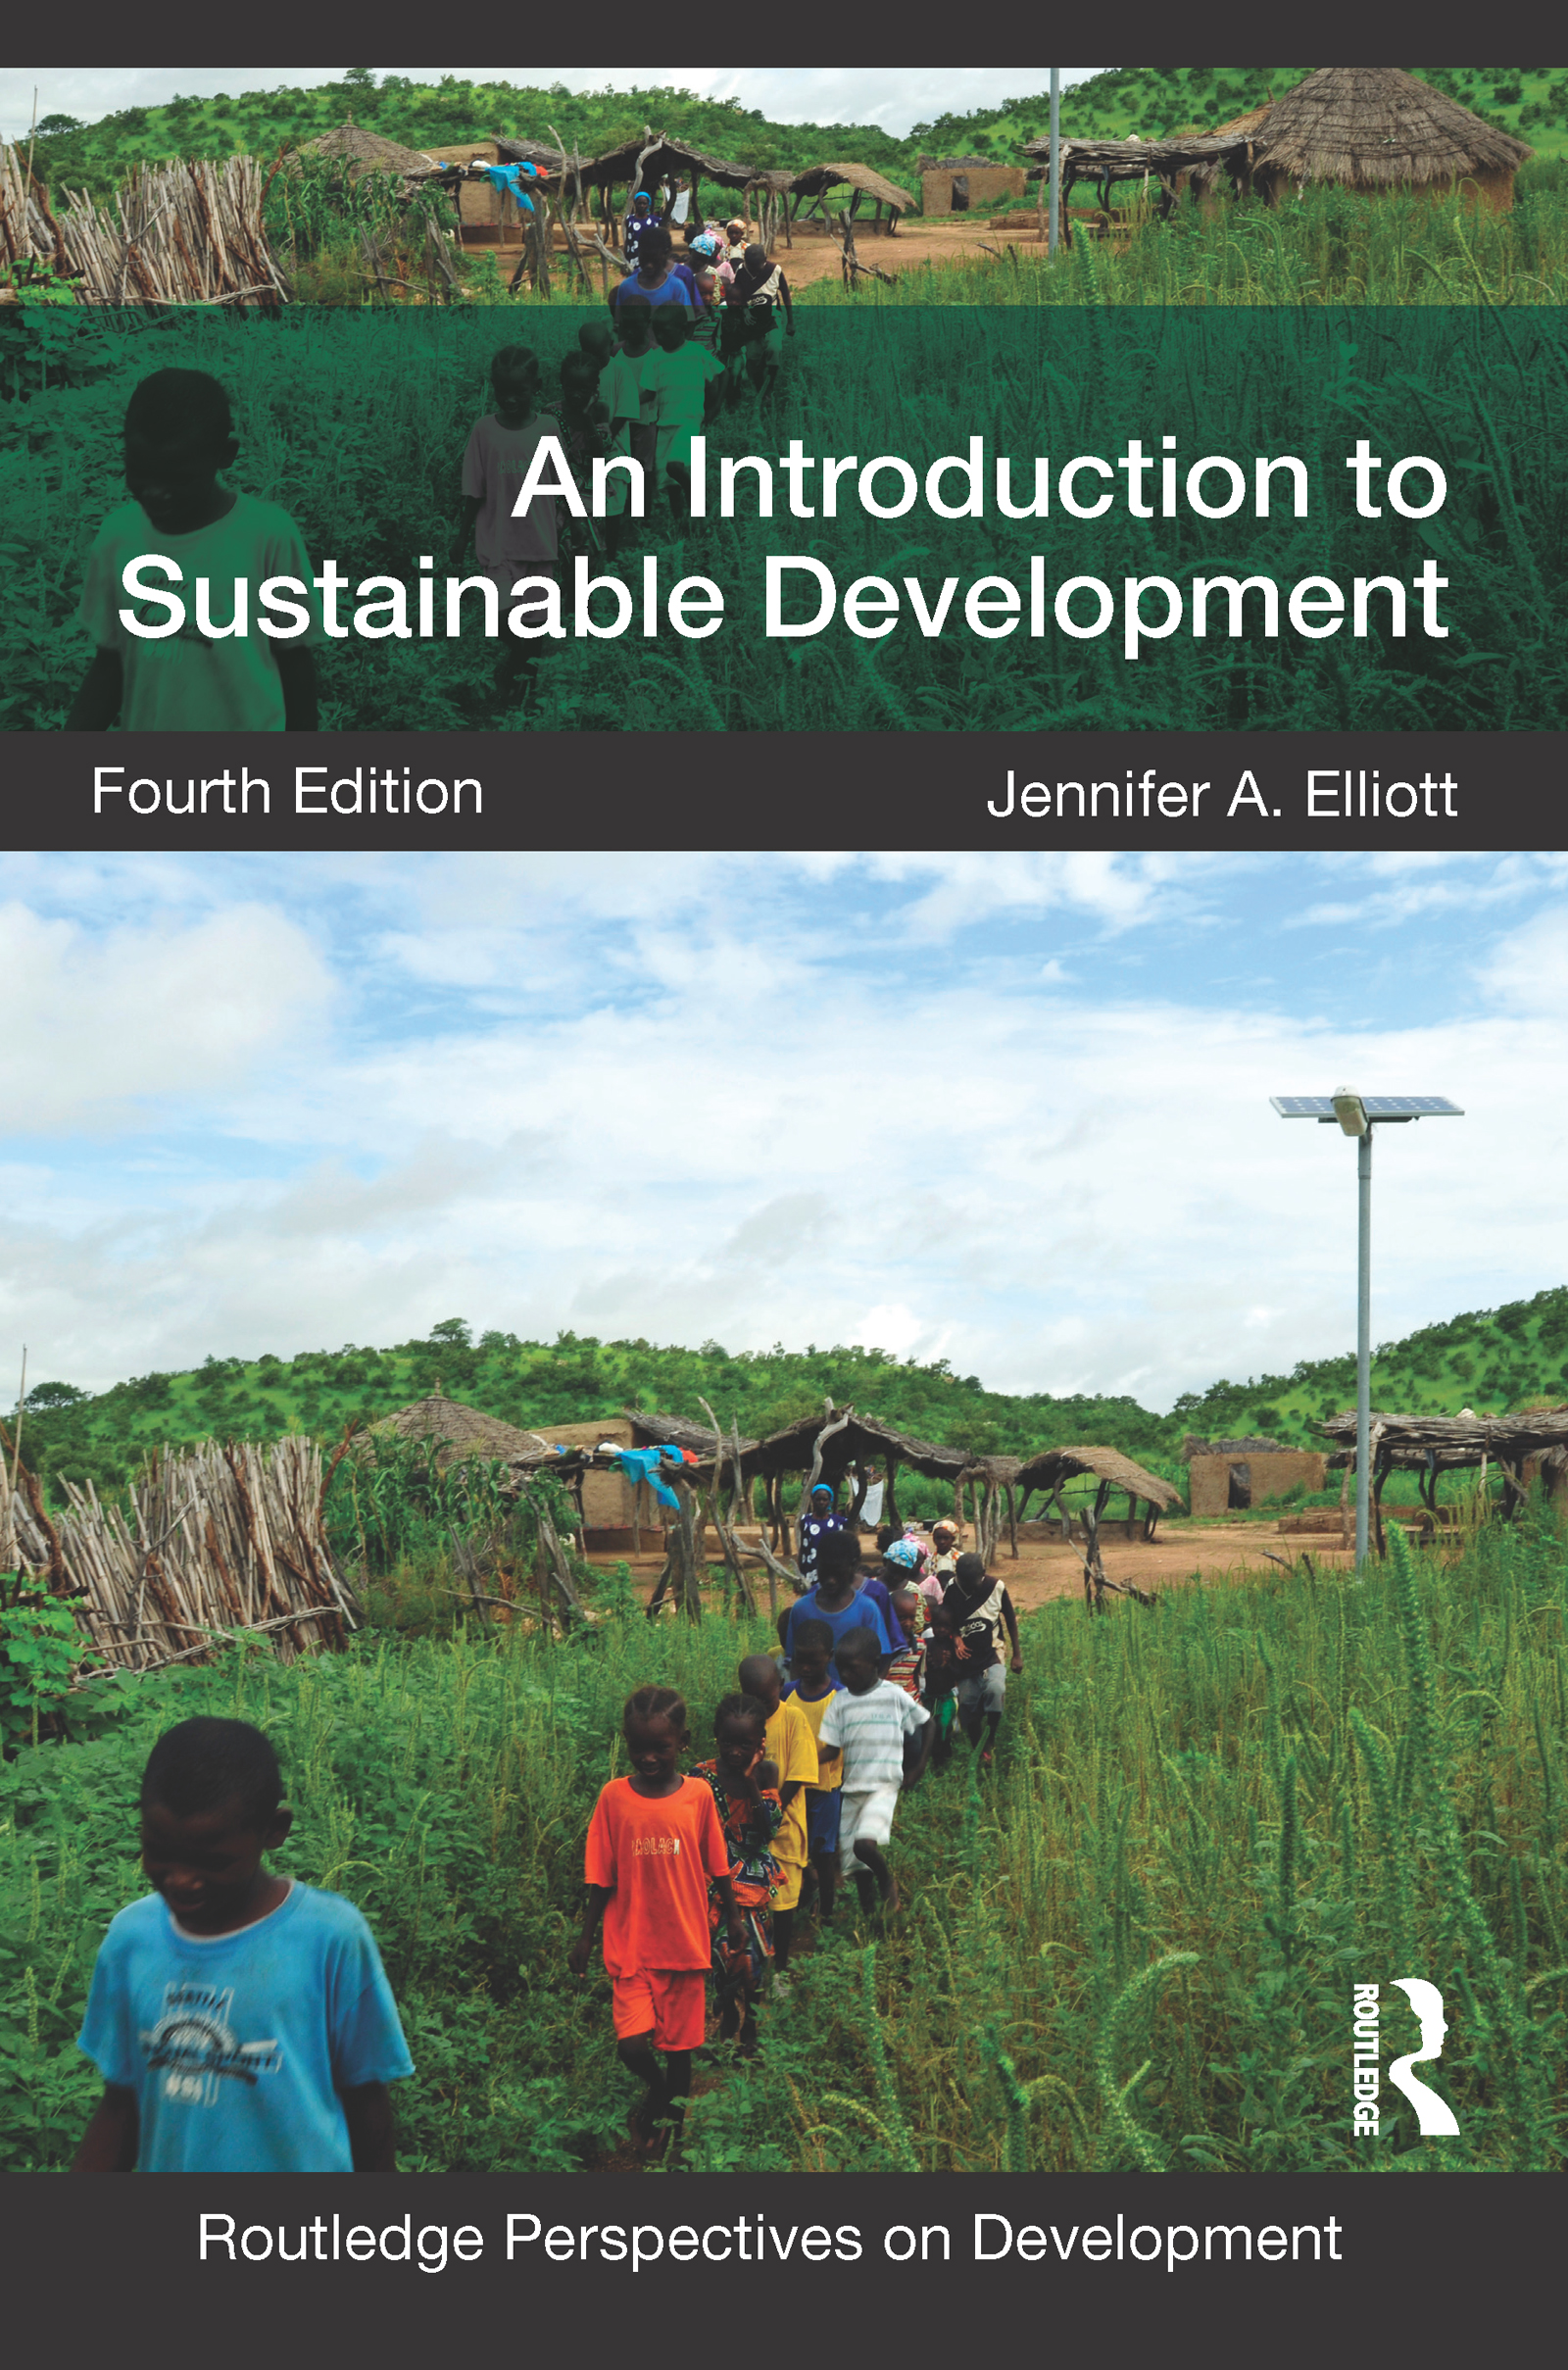 Download Ebook An Introduction to Sustainable Development (4th ed.) by Jennifer Elliott Pdf